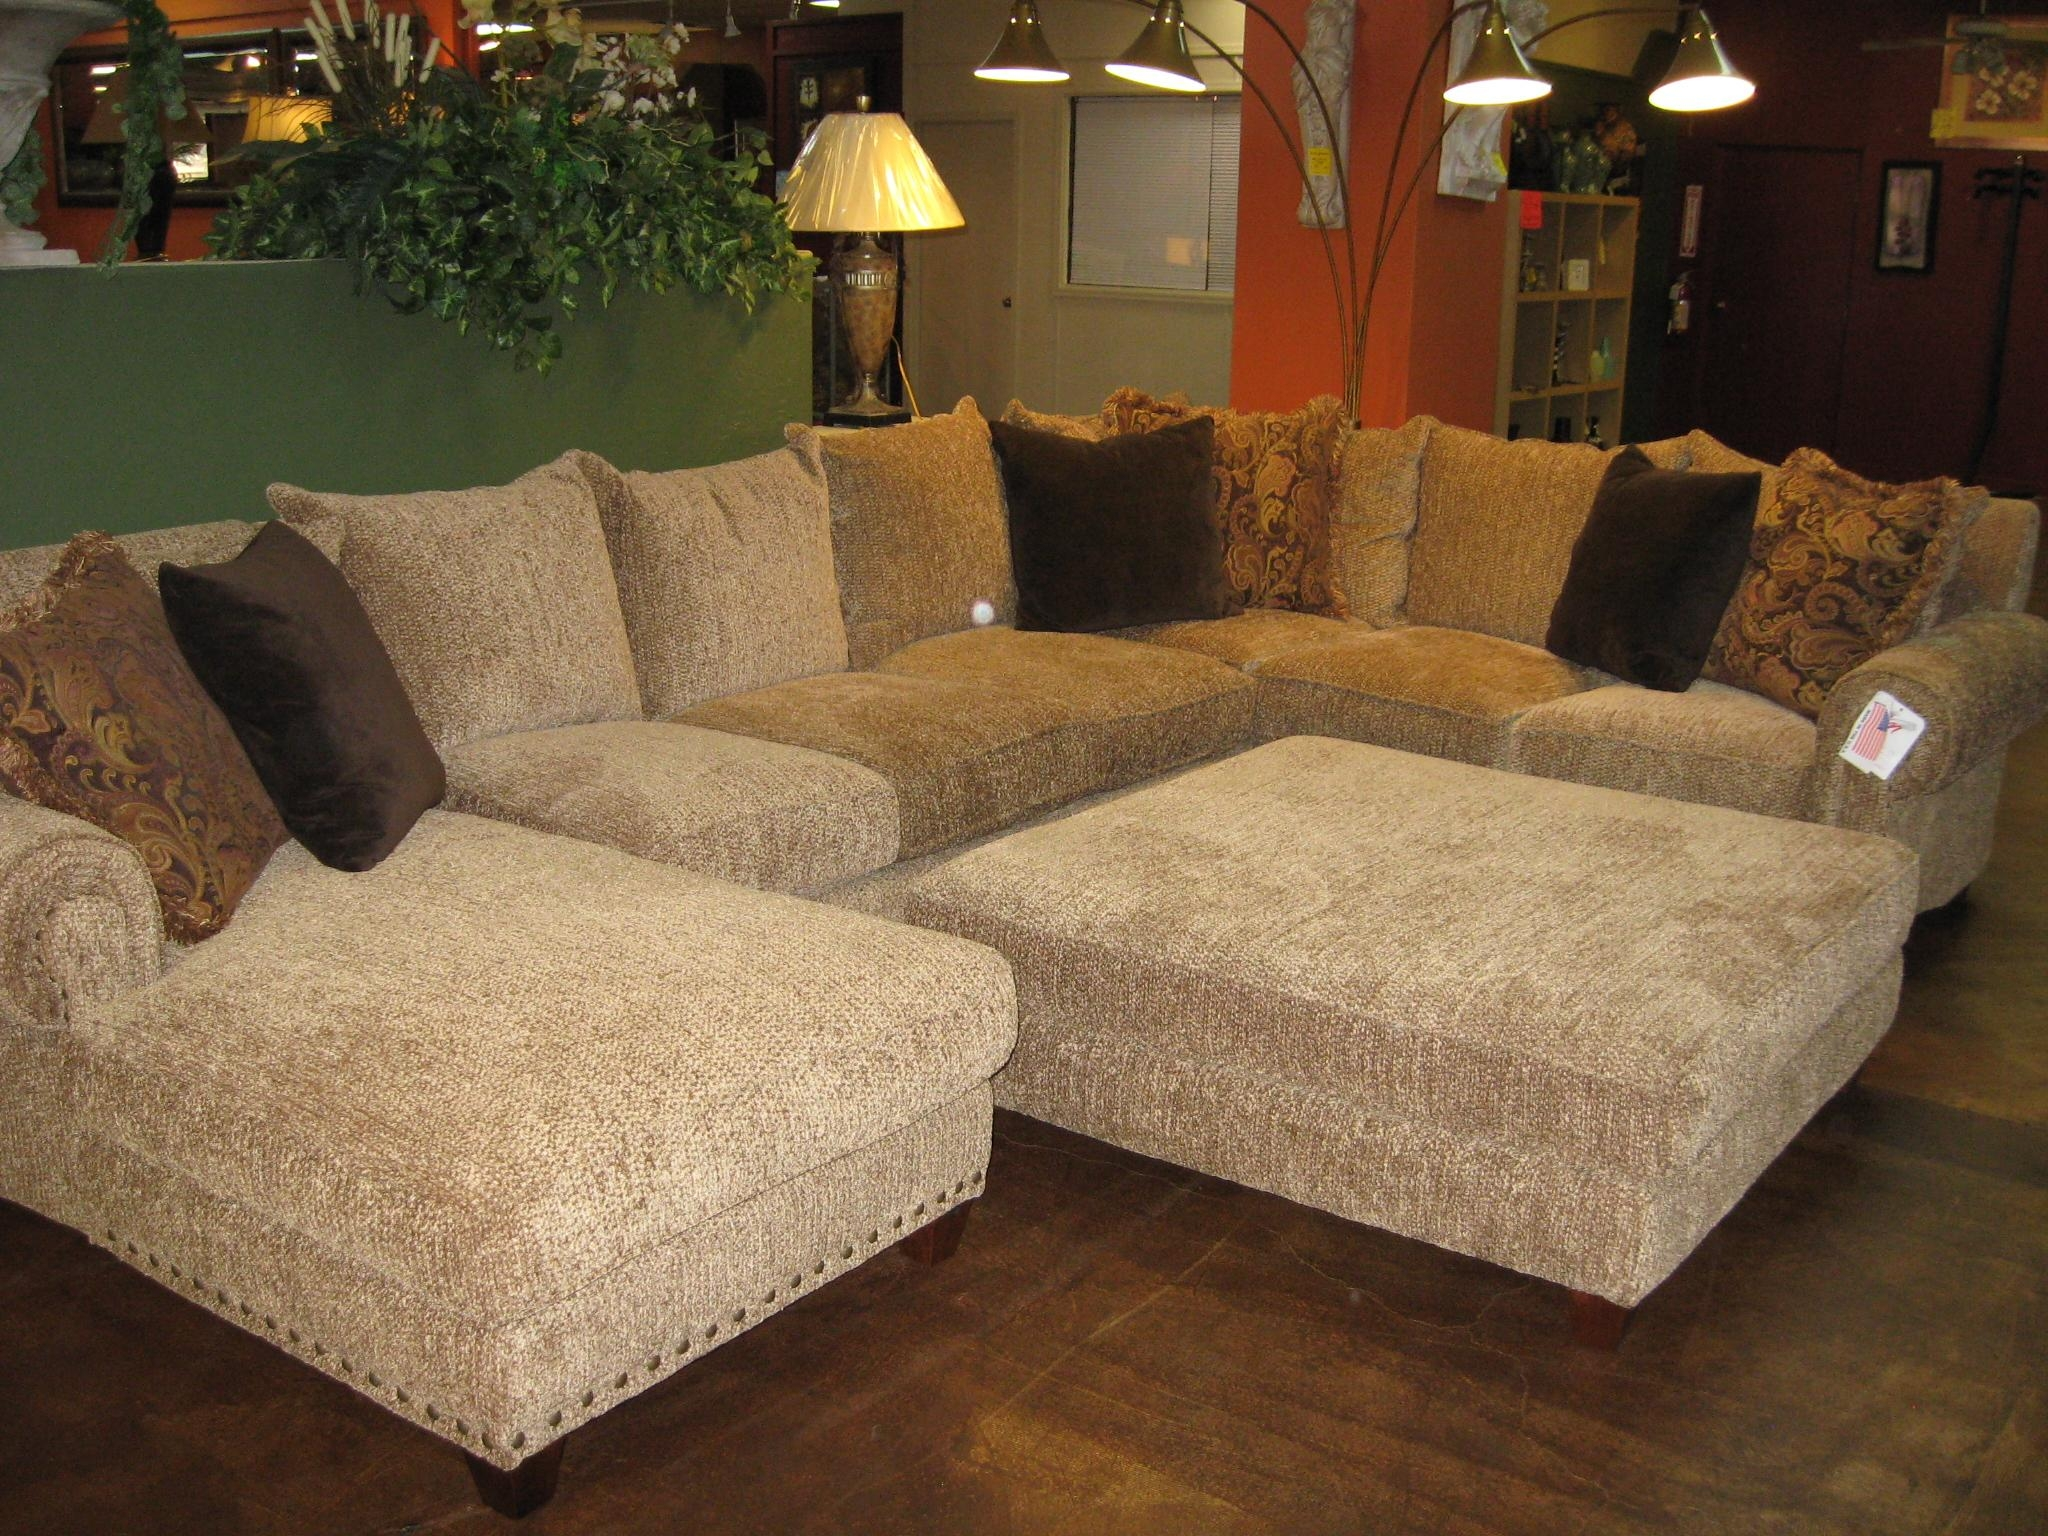 Sofas Center : Huge Fabric Reclining Sectionals U For In Giant Sofas (Image 19 of 20)